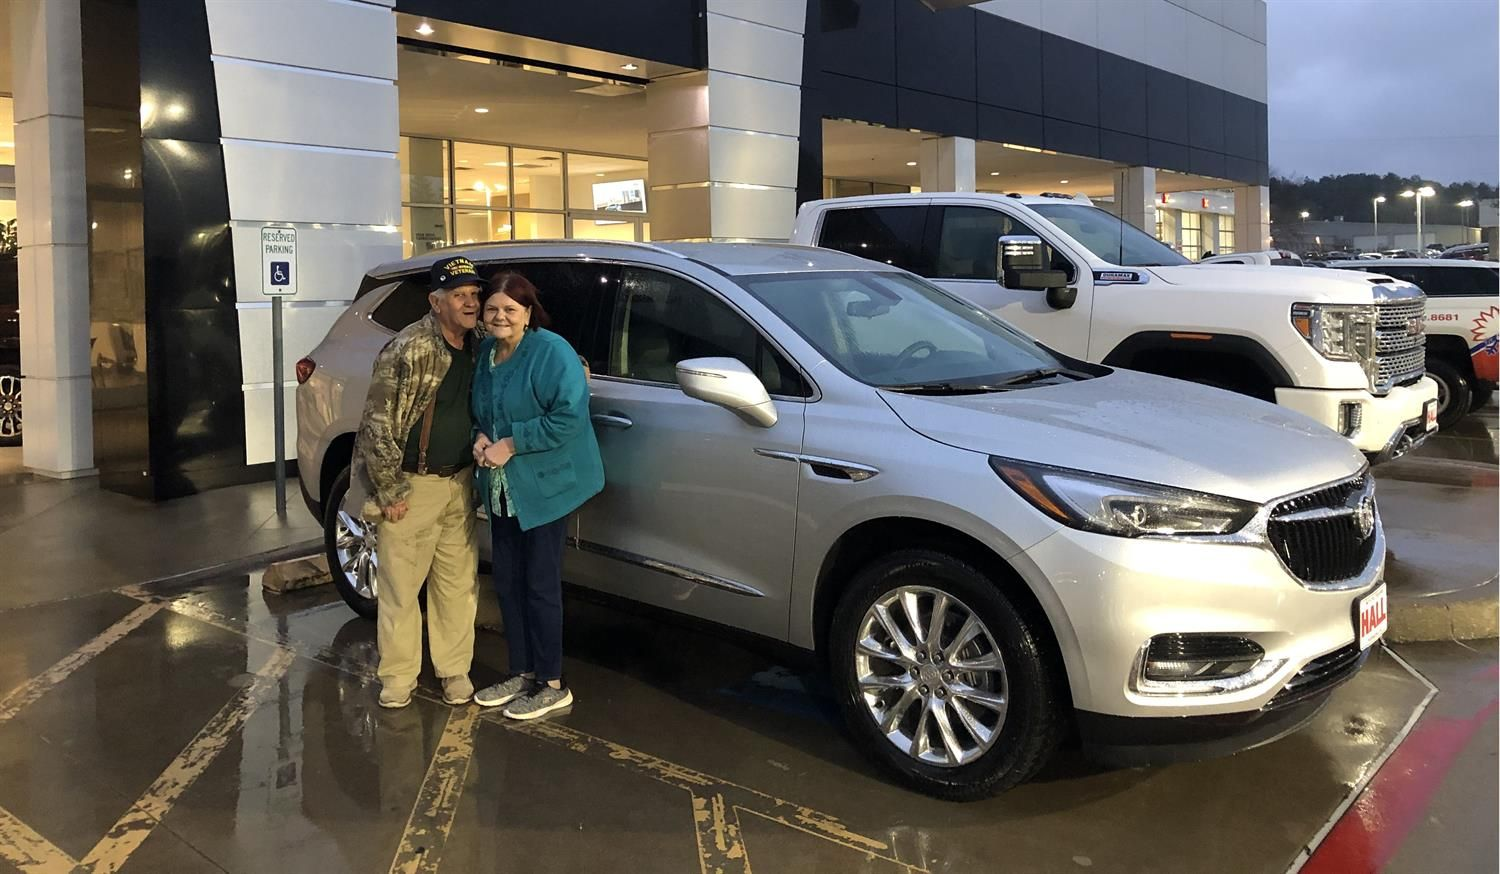 Charles And Debra We Hope You Enjoy Your New 2020 Buick Enclave Congratulations And Best Wishes From In 2020 Buick Gmc Congratulations And Best Wishes Buick Enclave